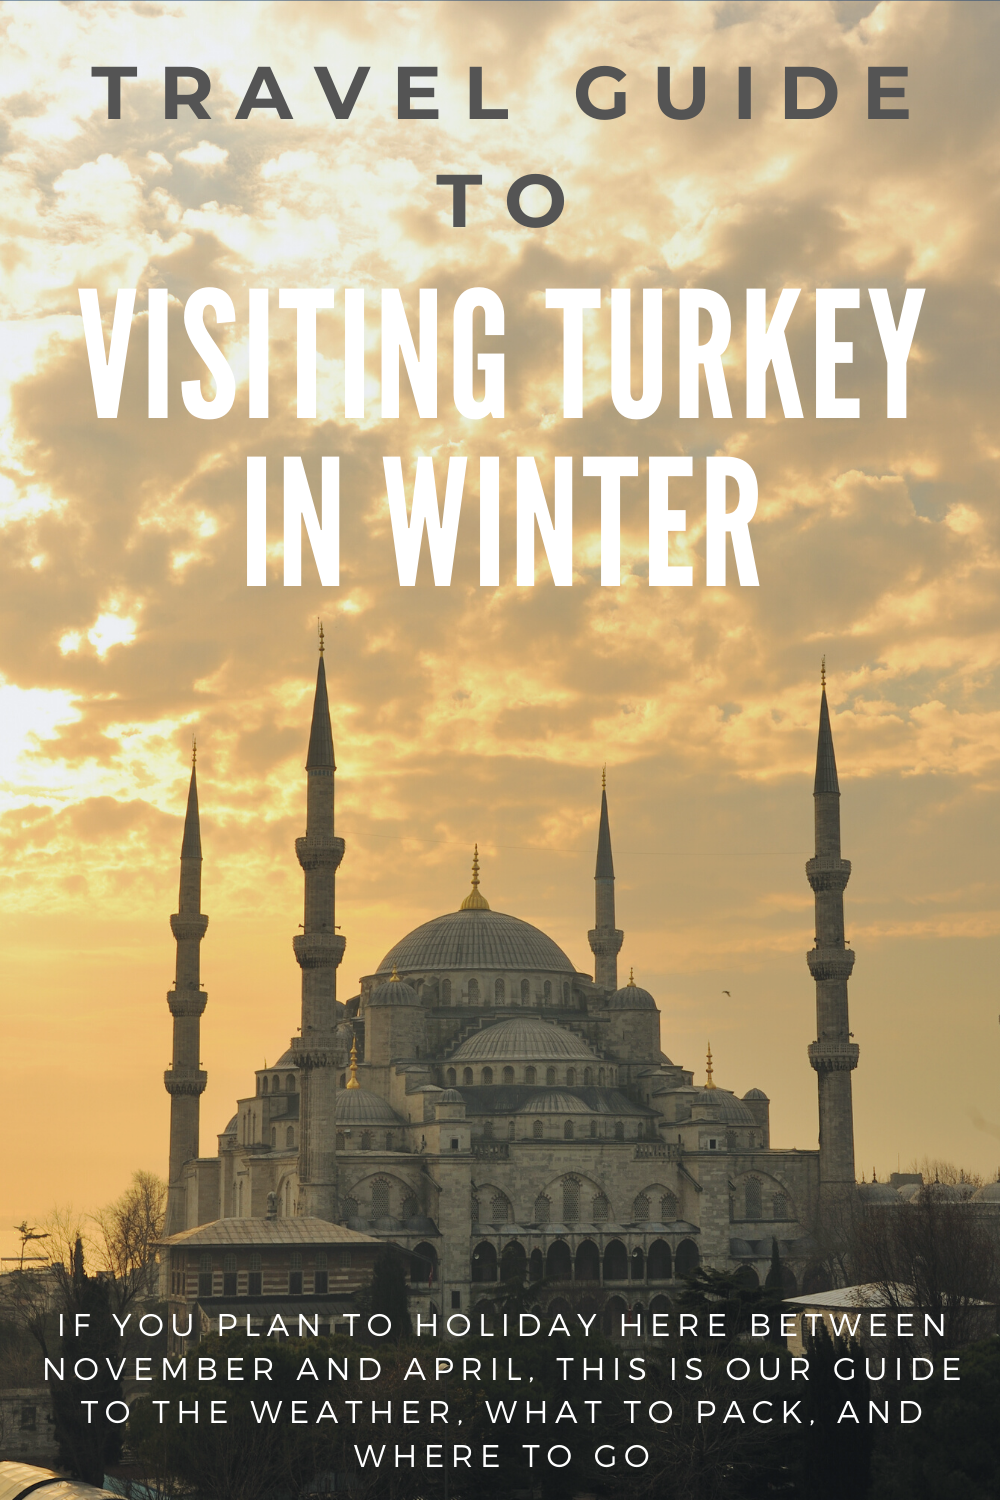 Guide to Visiting Turkey in Winter - Travel Tips a